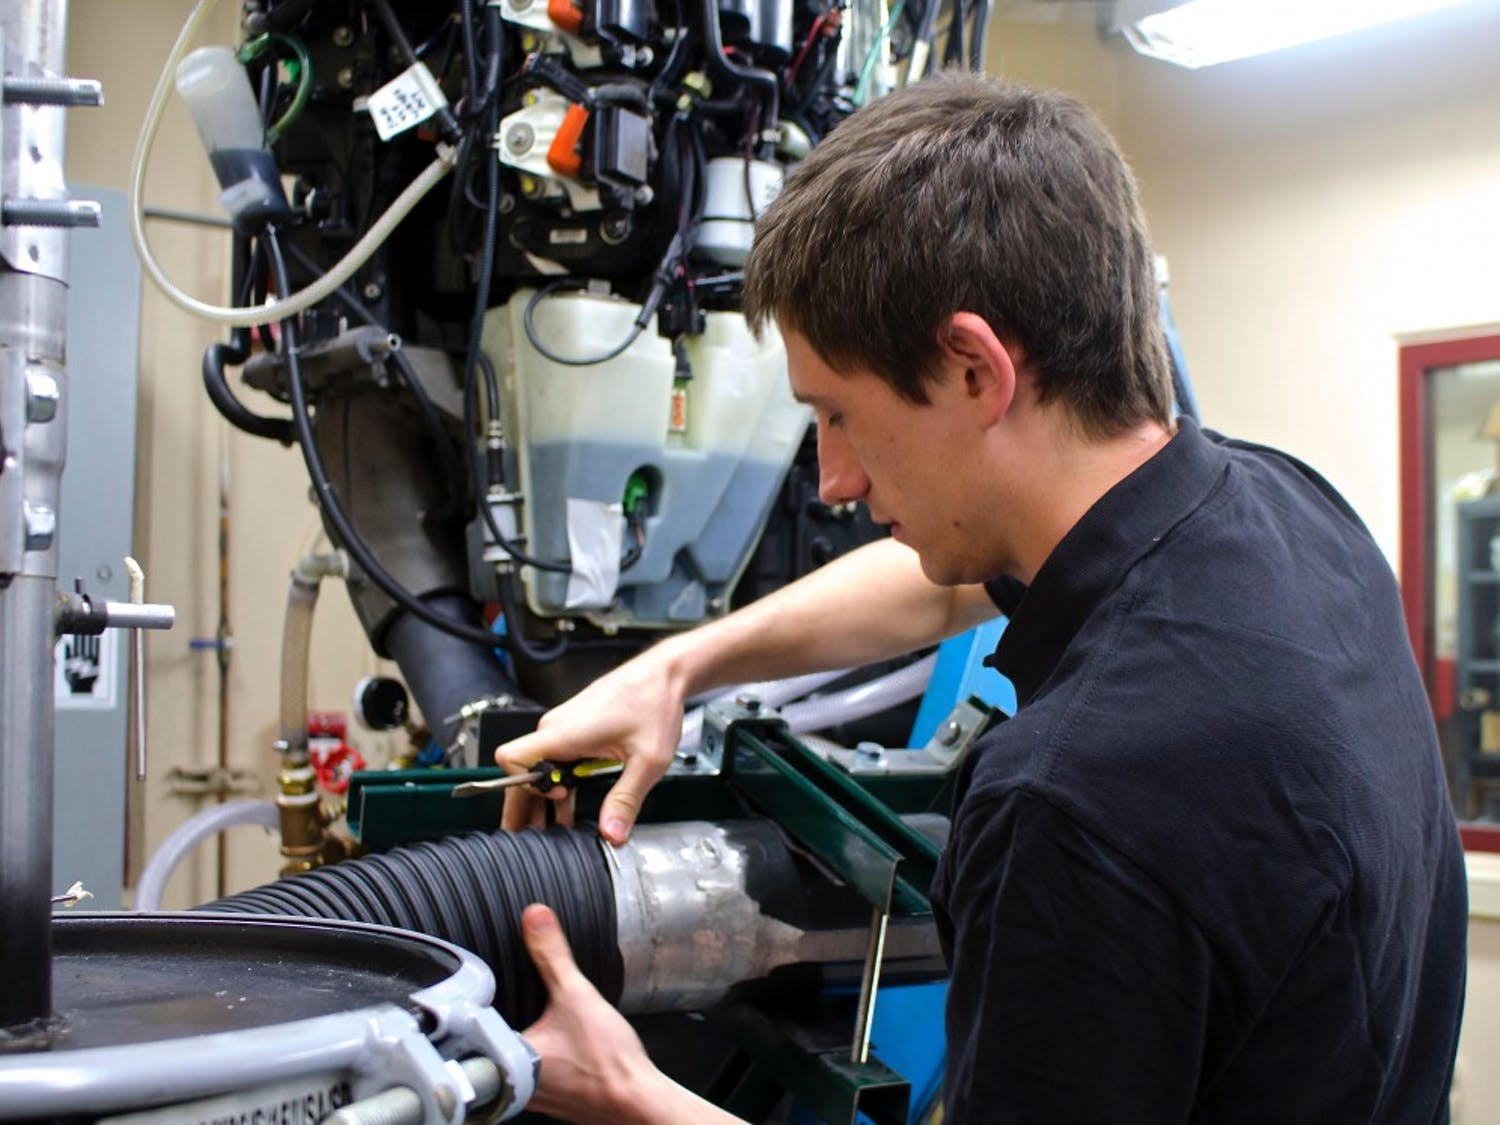 Kieran McCabe, a graduate student in UW-Madison's College of Engineering, will conclude a nearly two-year project testing an Evinrude outboard motor for the company BRP before he graduates. McCabe is one of many students throughout the UW System sharing their talents with businesses in Wisconsin and beyond.